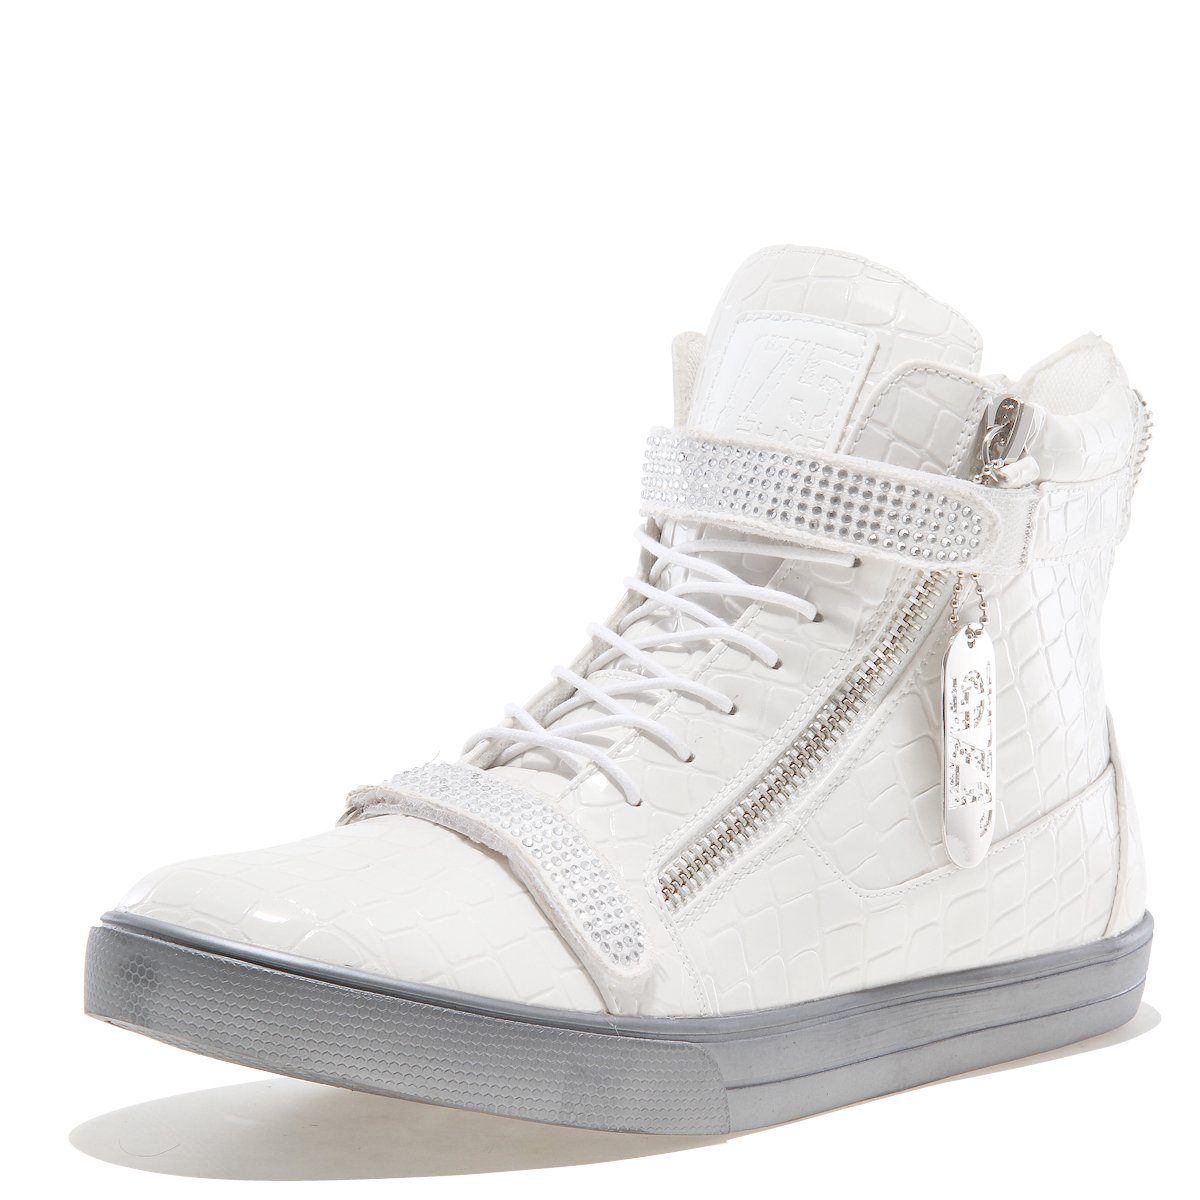 Jump J75 by Men's Zion High-Top Fashion Sneaker White Croco 11 D US